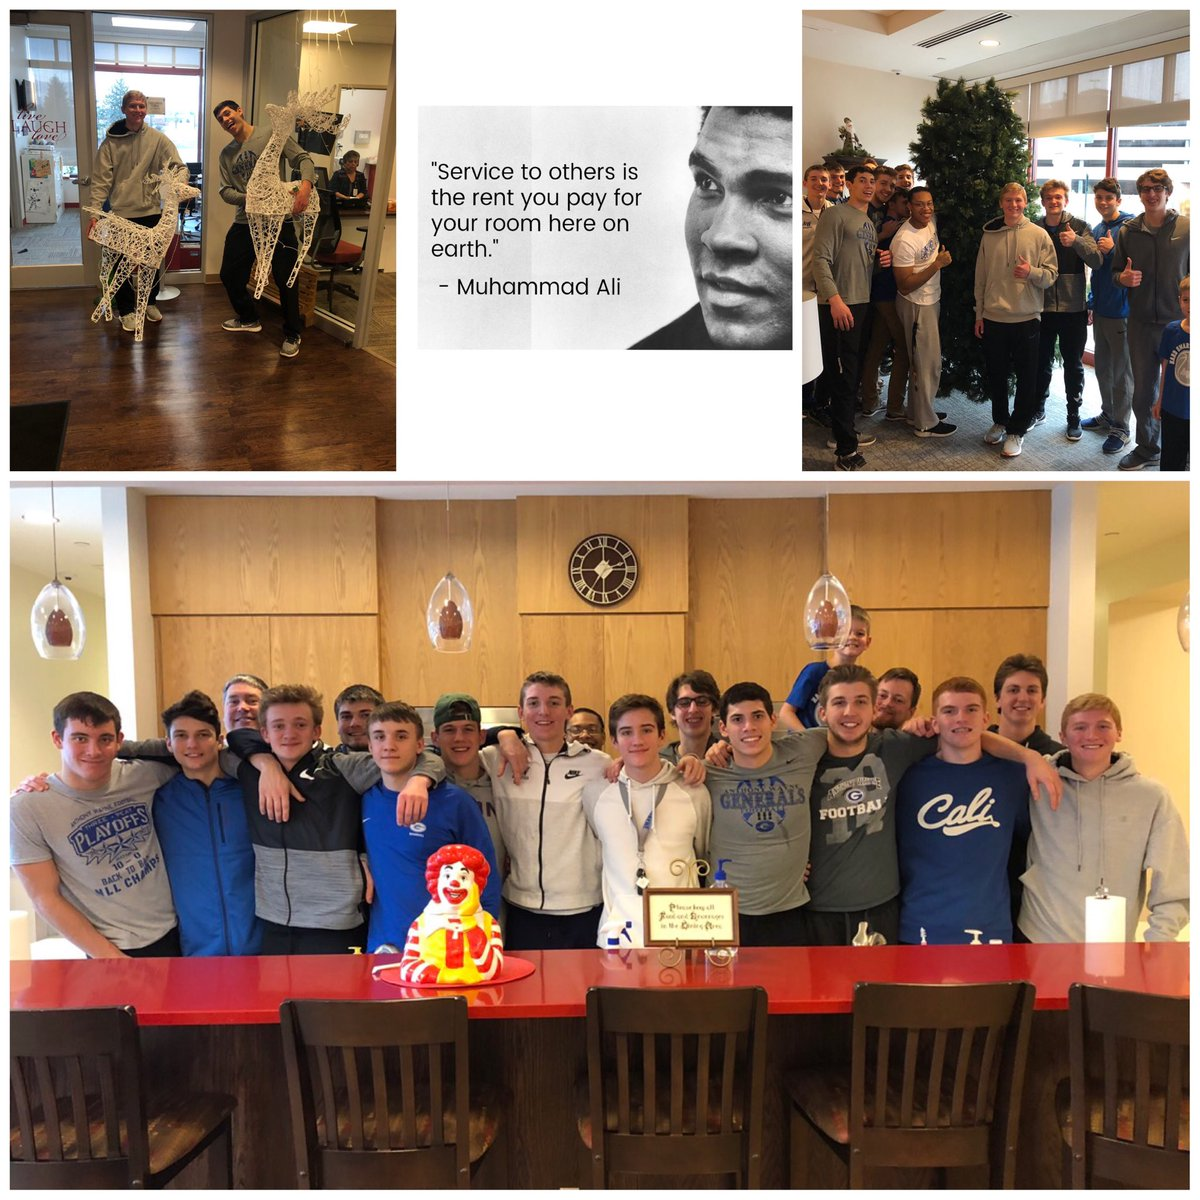 Thank you to The Ronald McDonald House of Toledo for hosting us today for your Christmas season cleanup. It was a fun day of giving back! #payitforward #BluePride #WinTheMoment<br>http://pic.twitter.com/kcnNabFqIc